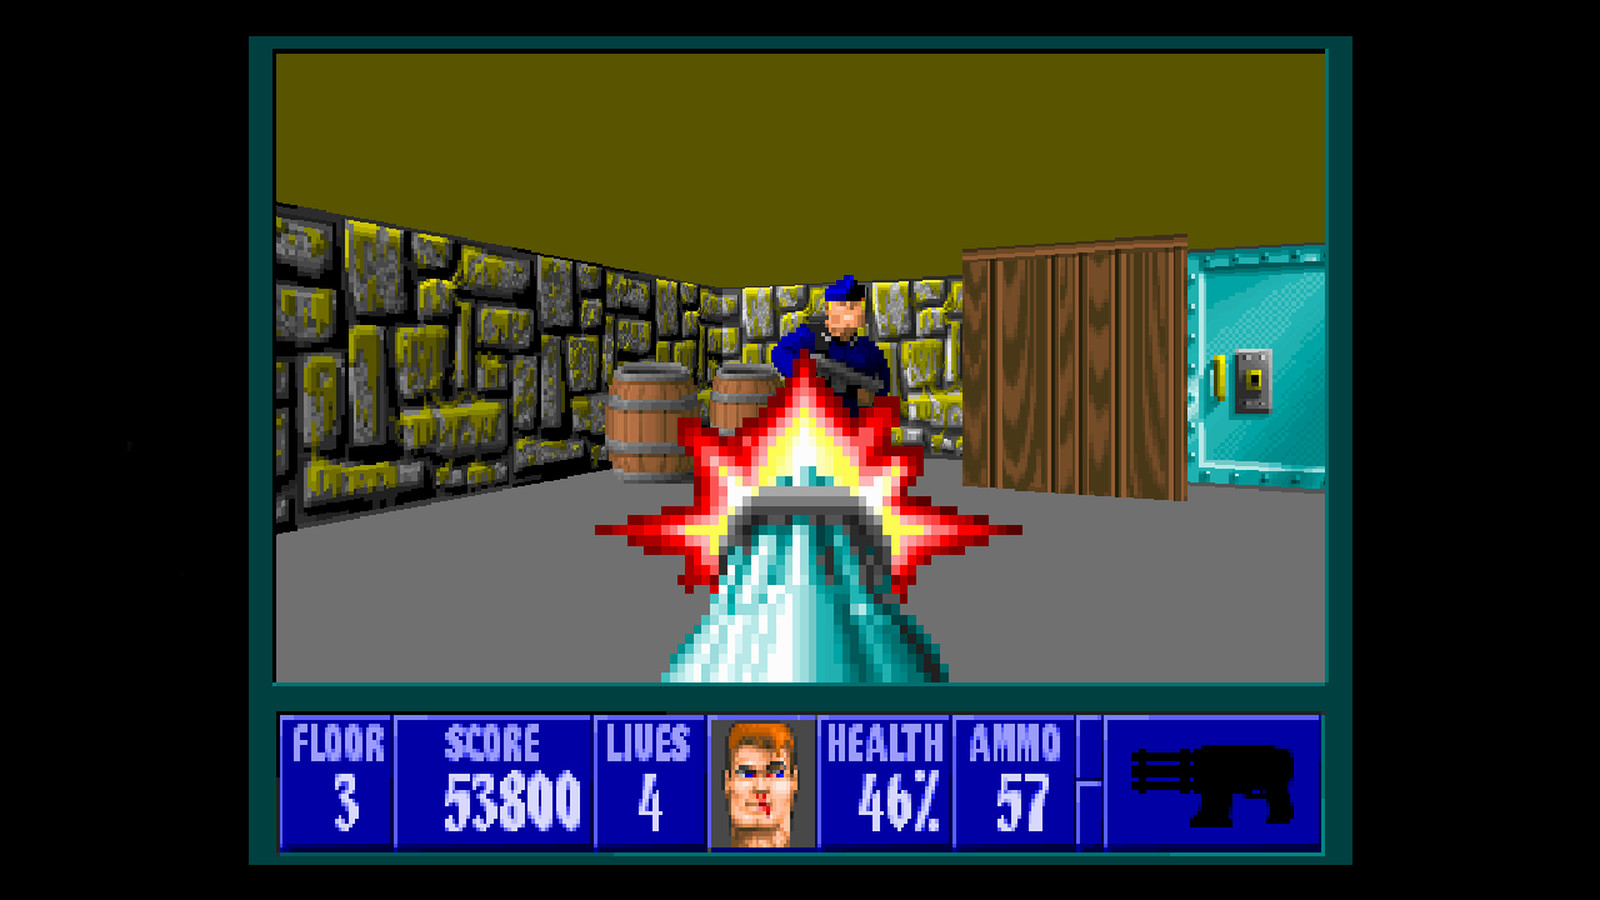 Wolfenstein 3d returns to psn xbla for 5 polygon for Wolfenstein 3d